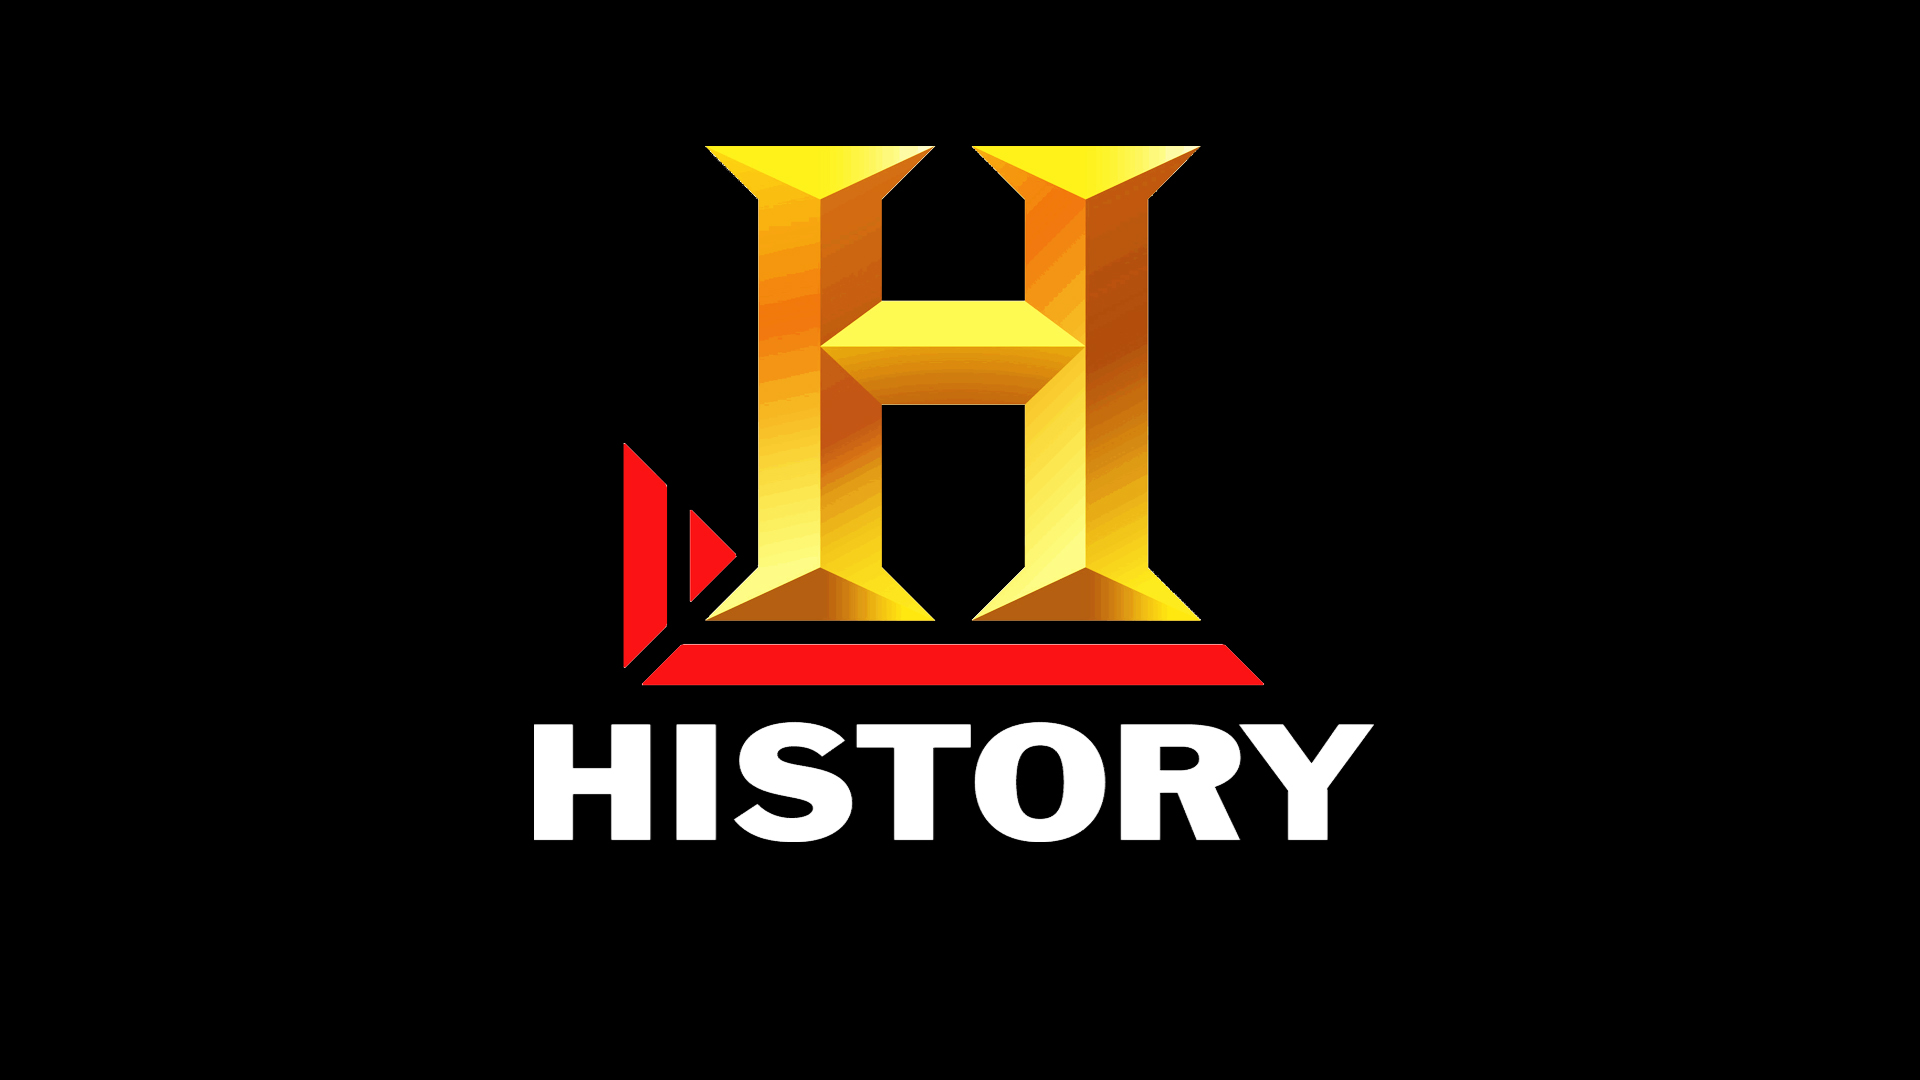 The History Channel Black Logo Wallpaper 1920x1080 HD Wallpapers Download Free Images Wallpaper [1000image.com]